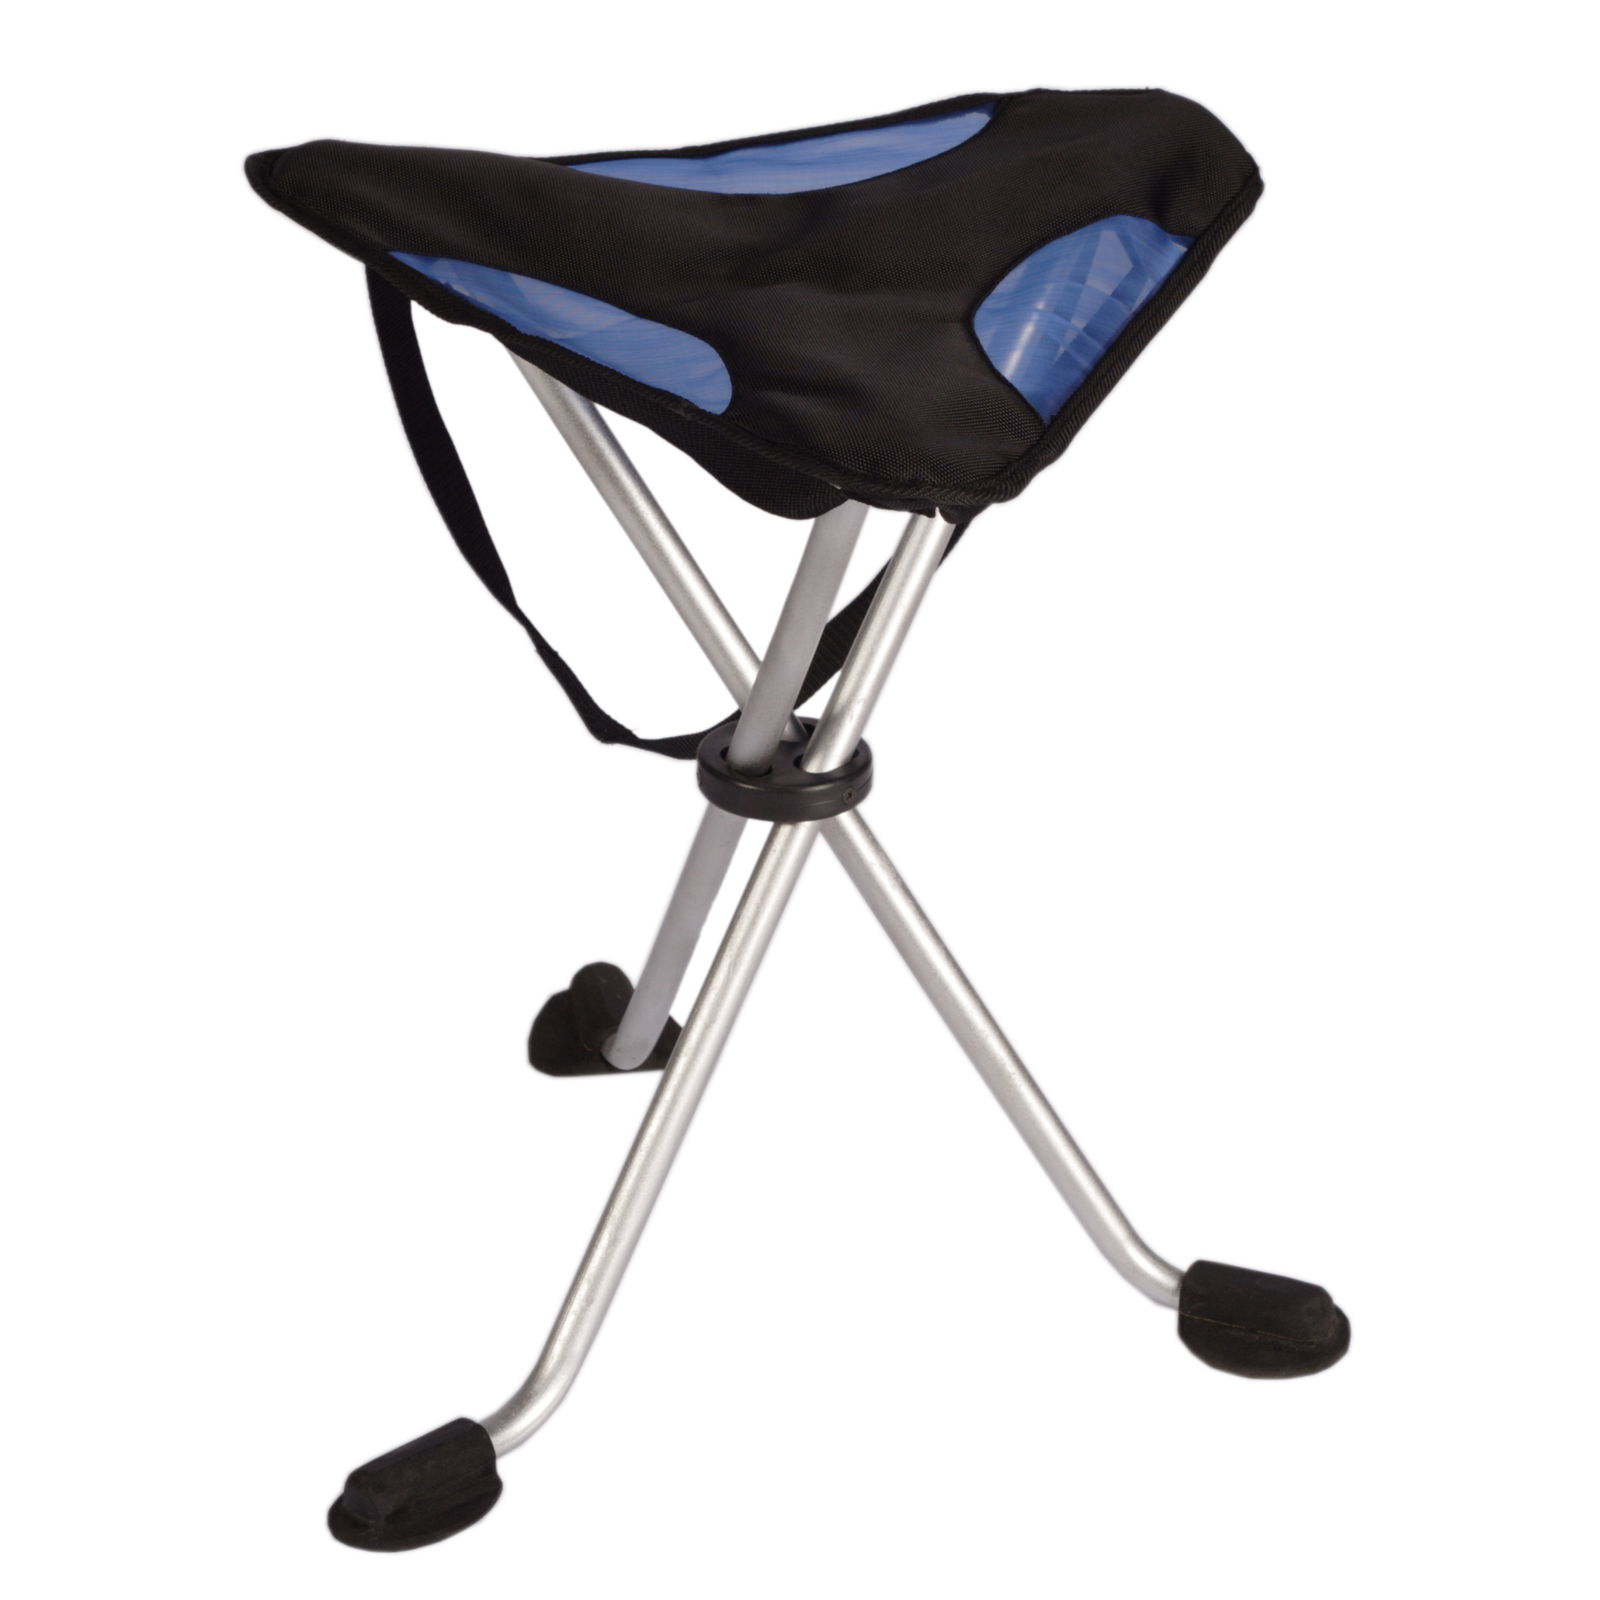 Travel Chair The Travel Chair Sidewinder Tripod Chair Lawn Chairs At